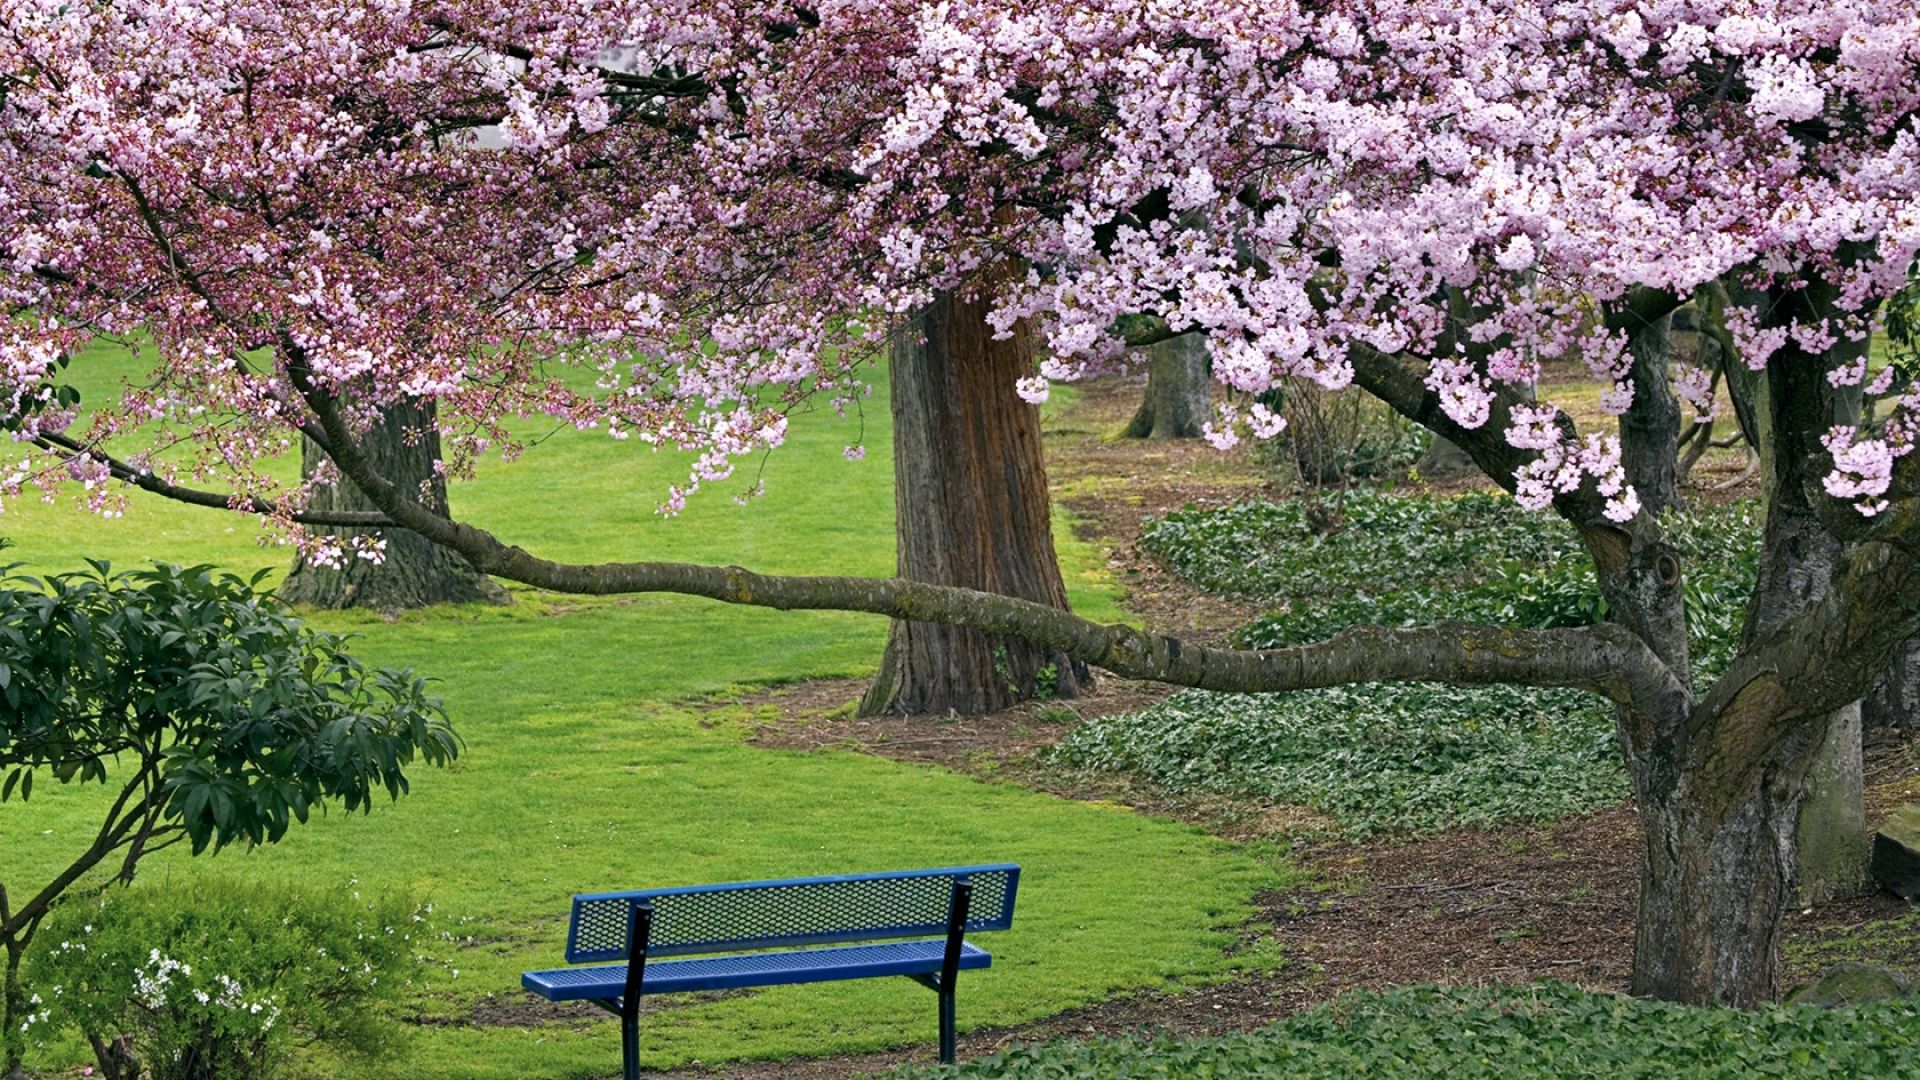 Download Wallpaper 1920x1080 Bench, Tree, Spring, Grass